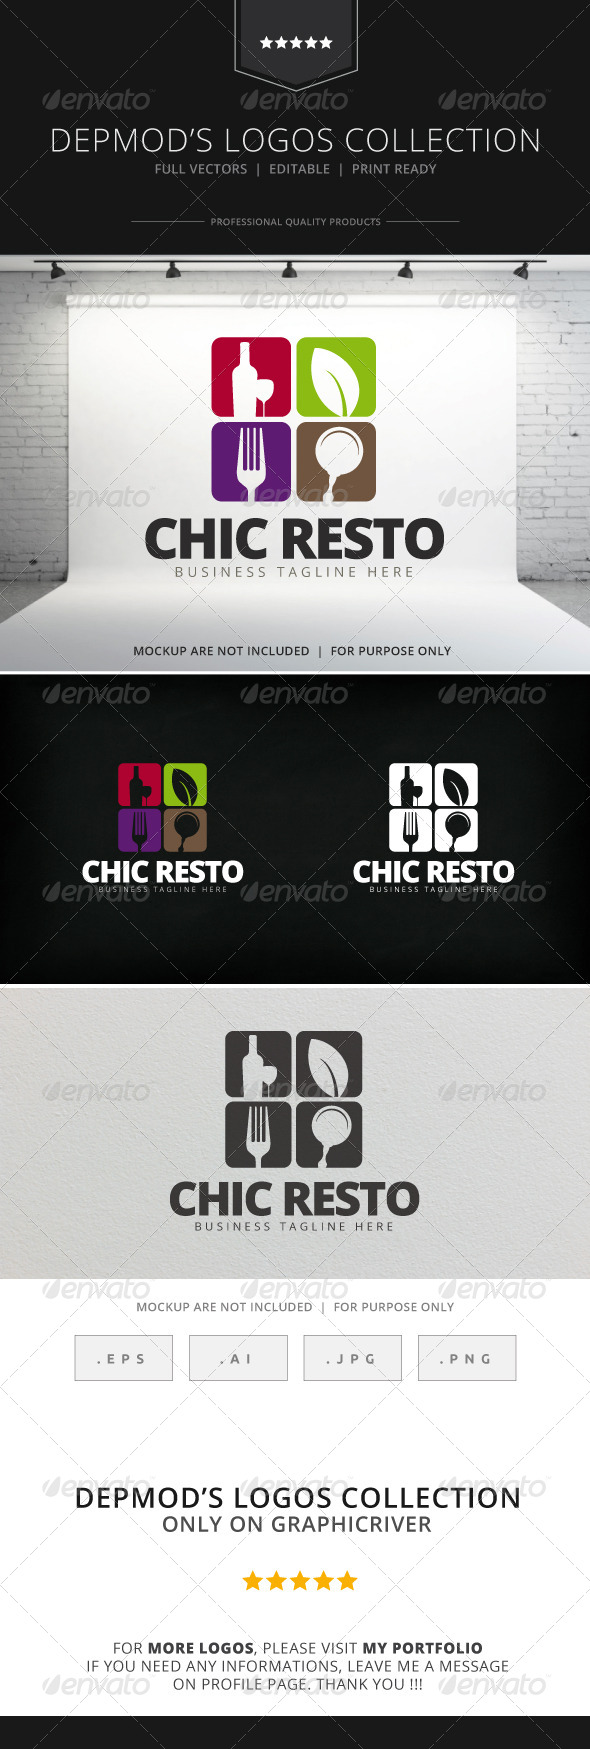 GraphicRiver Chic Resto Logo 7819795